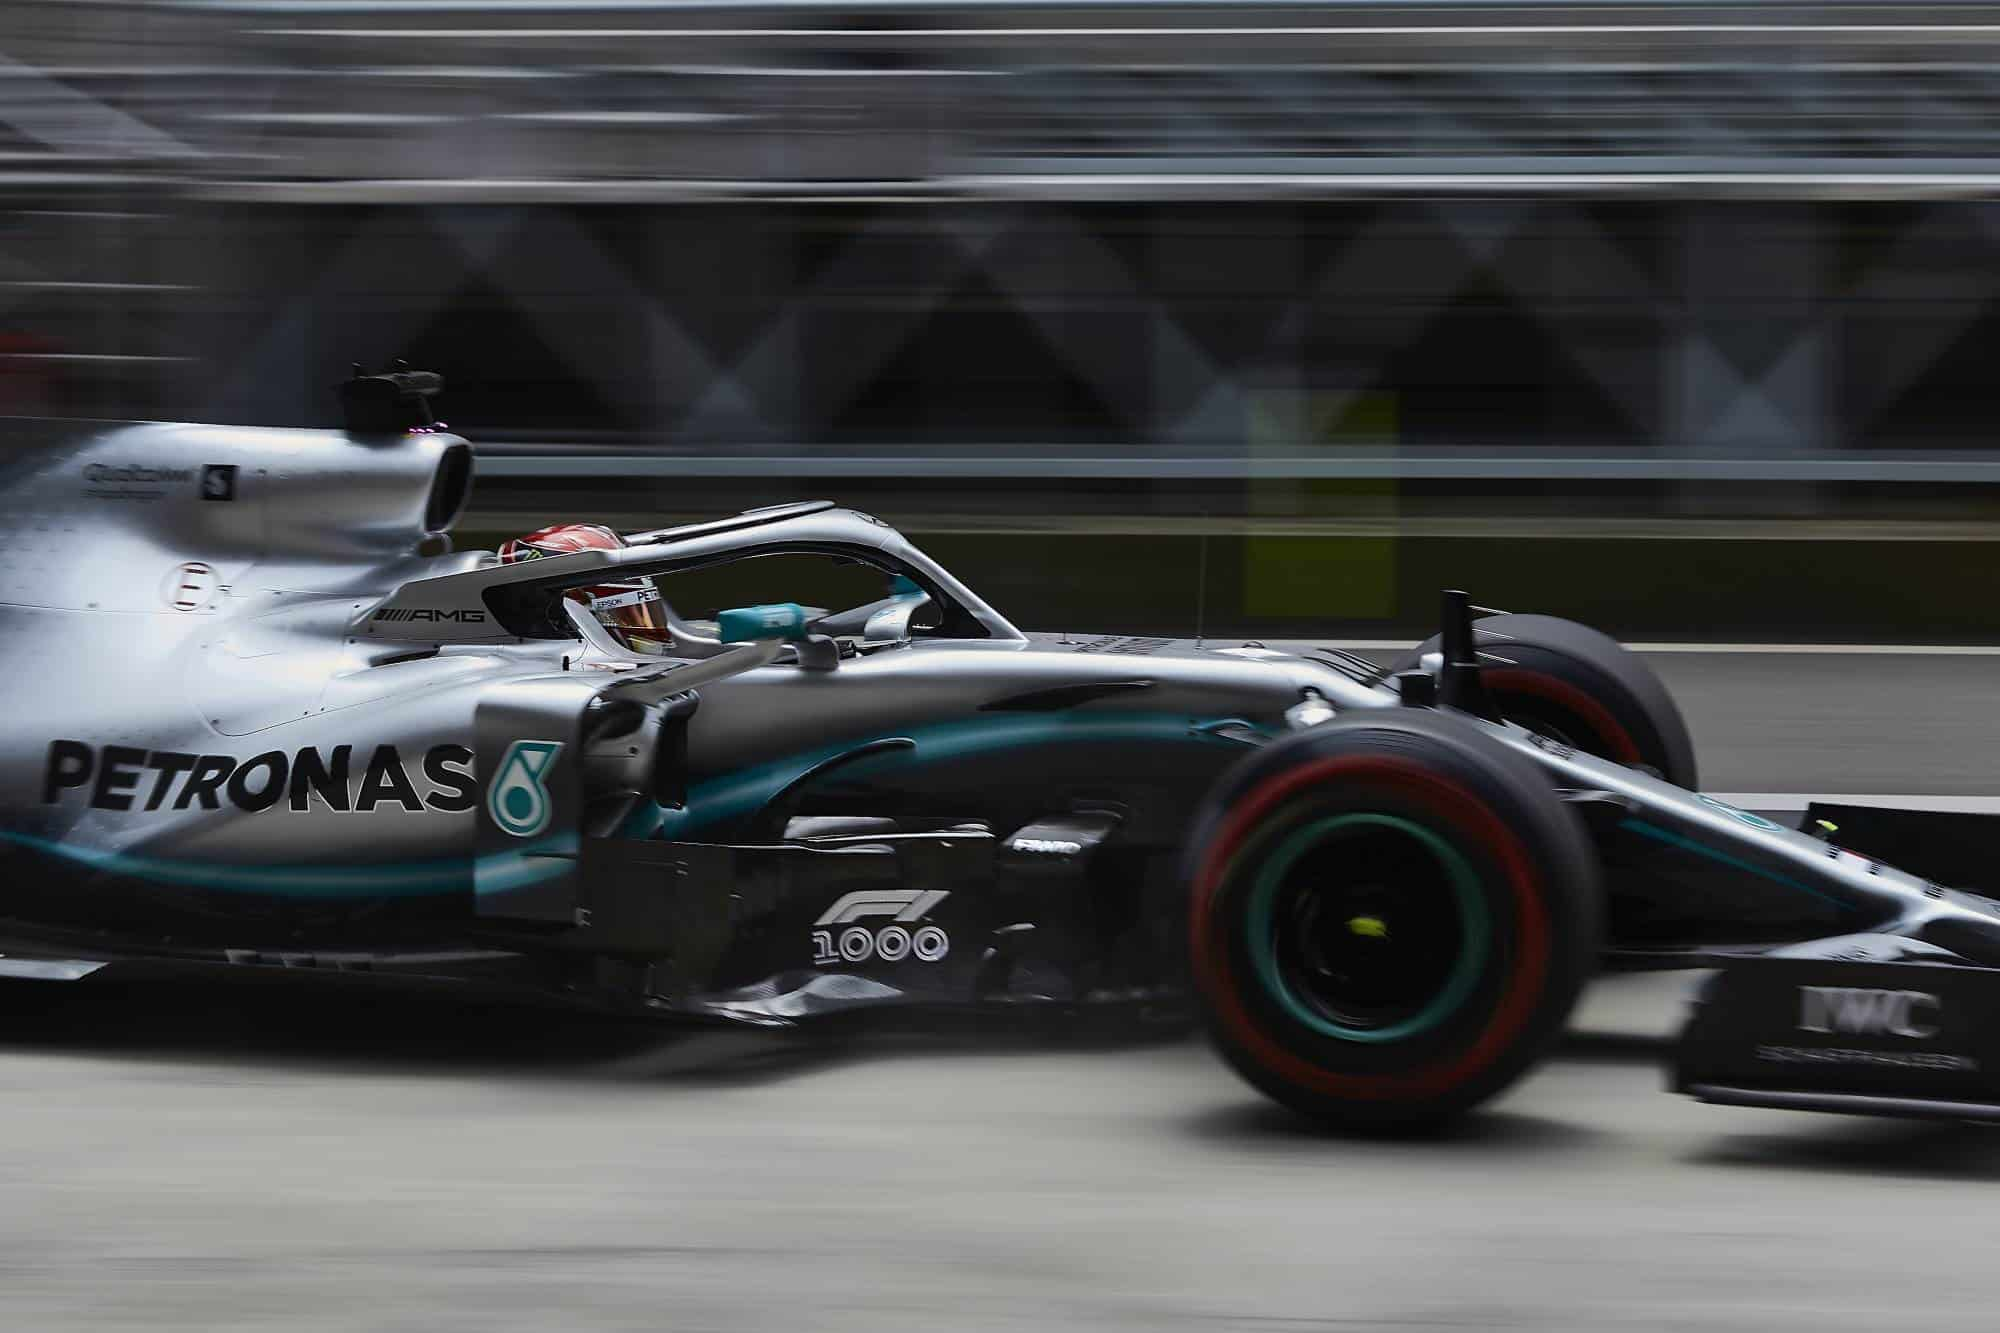 Lewis Hamilton Mercedes F1 W10 1000th F1 race Chinese GP F1 2019 Photo Daimler